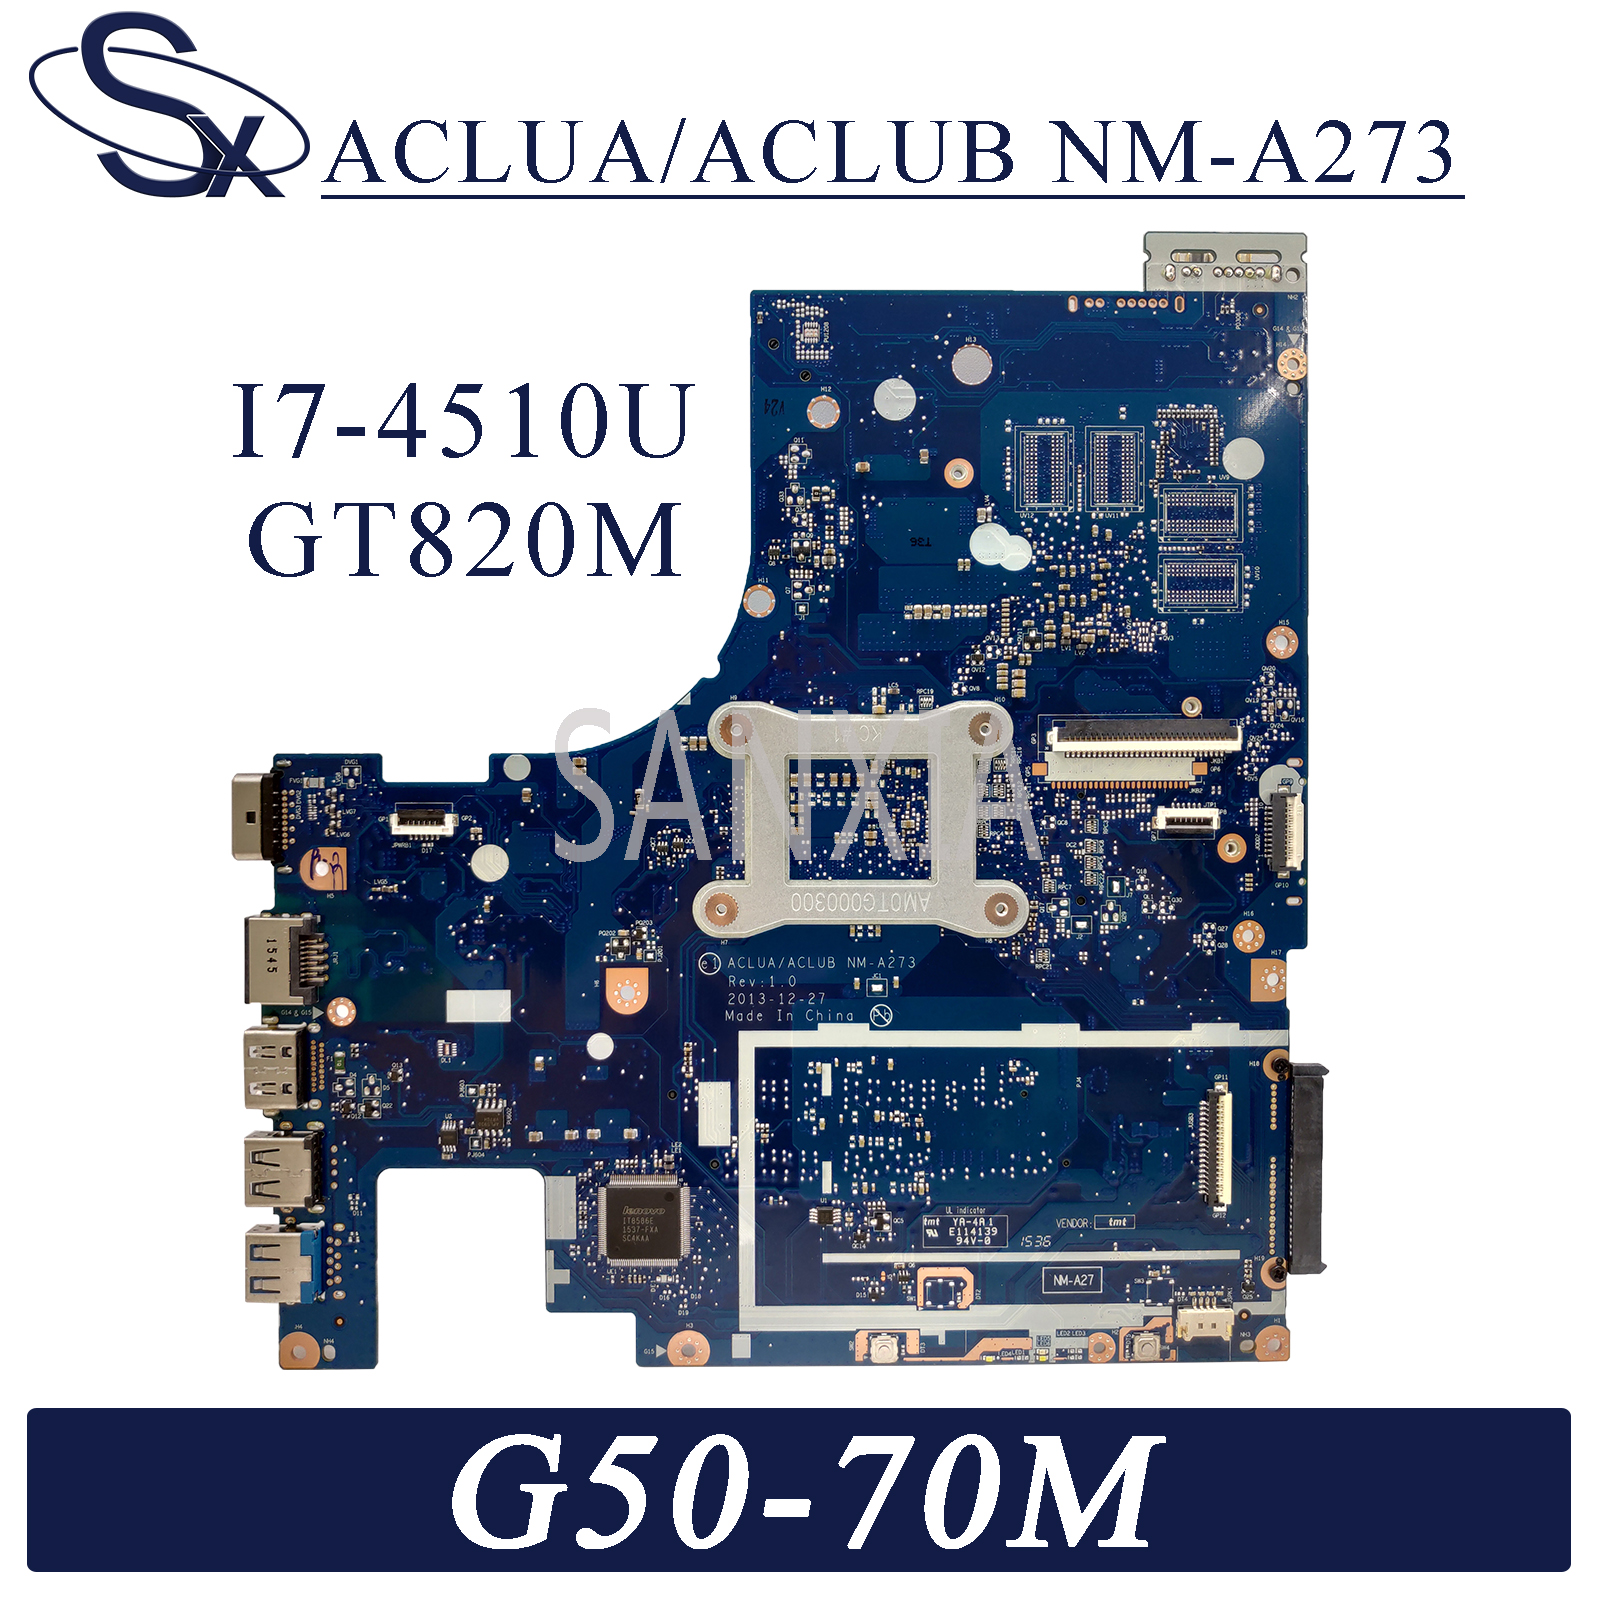 KEFU NM-A273 Laptop <font><b>motherboard</b></font> for <font><b>Lenovo</b></font> G50-70M <font><b>Z50</b></font>-<font><b>70</b></font> original mainboard I7-4510U GT820M image